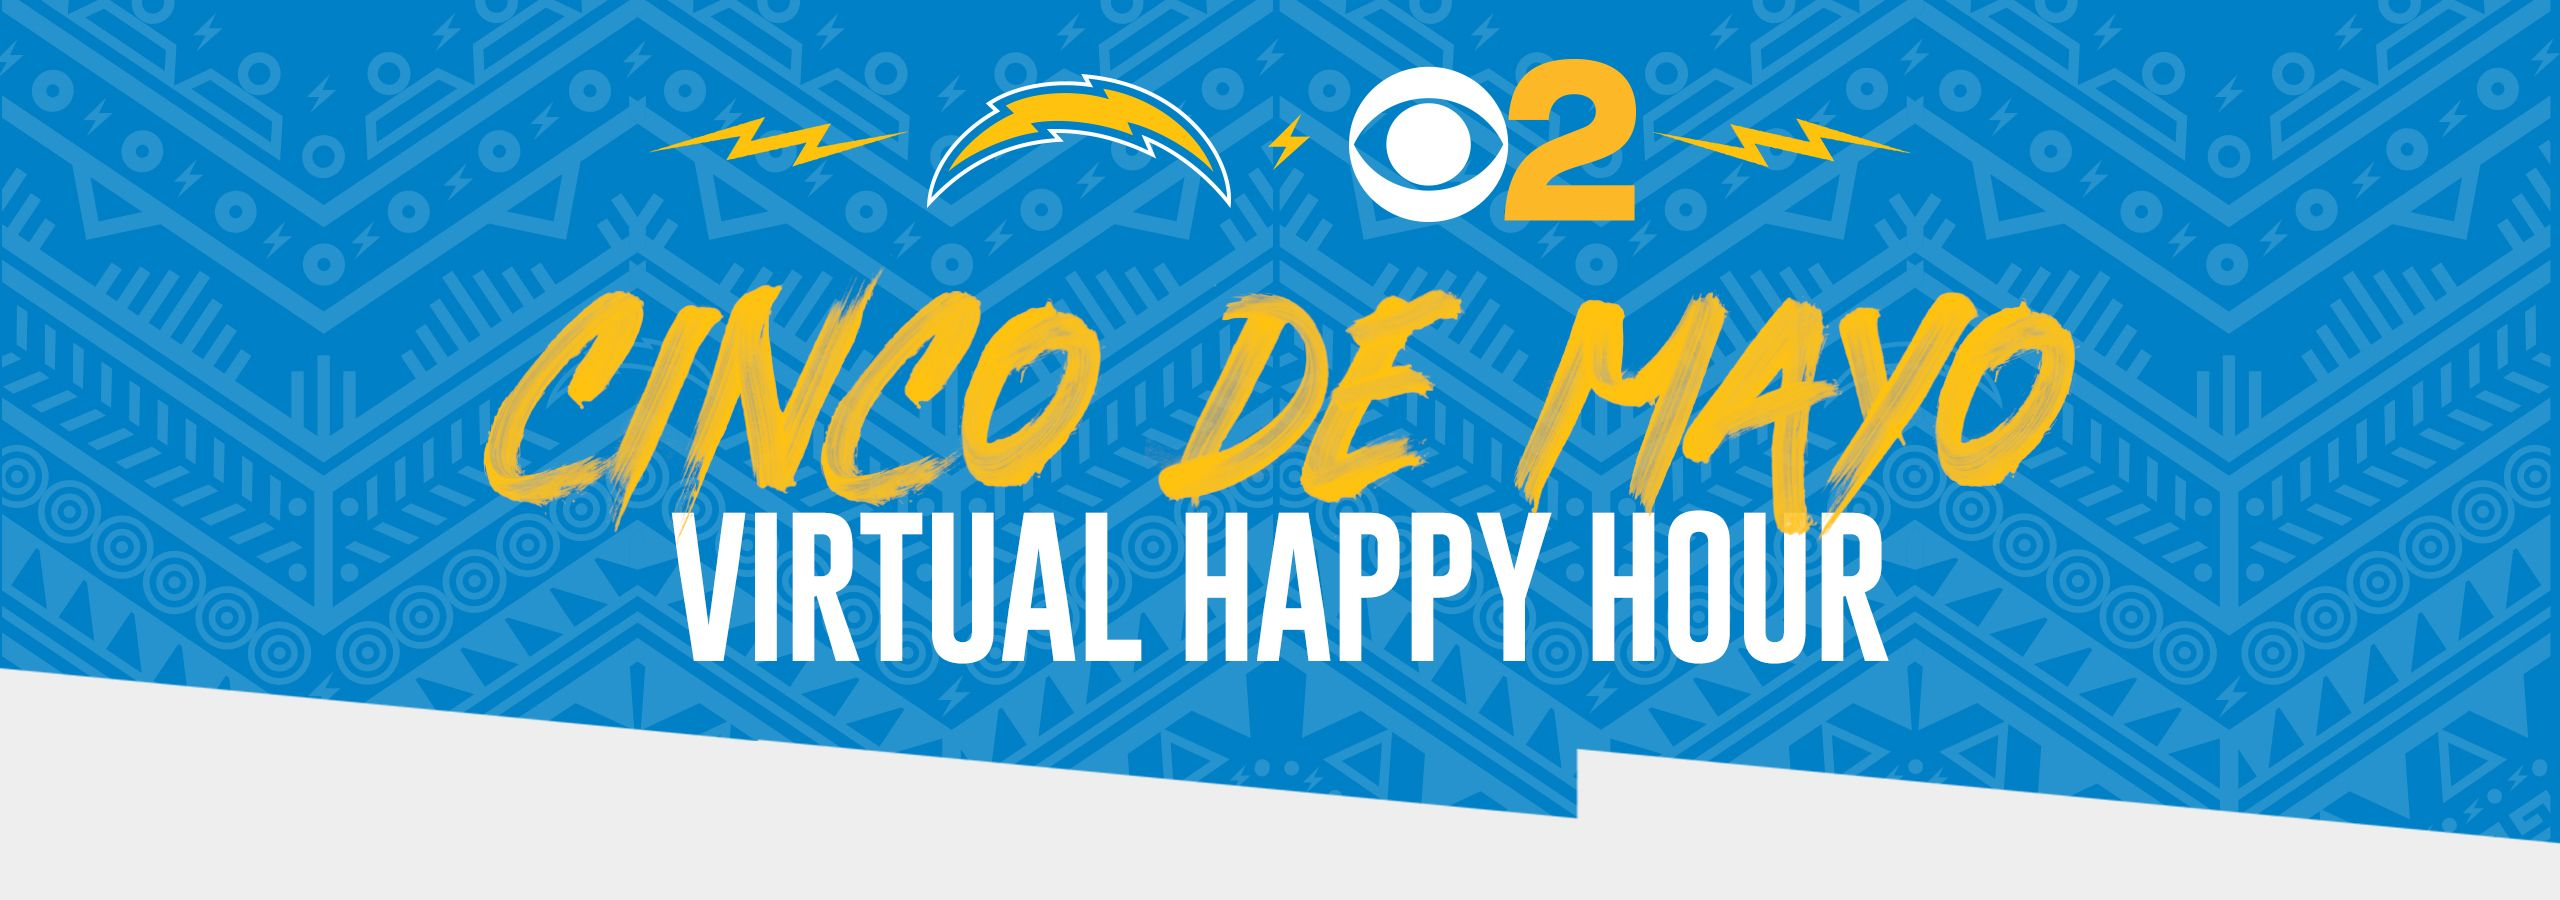 200424_Site_LP_CBS_CincoDeMayo_HappyHour